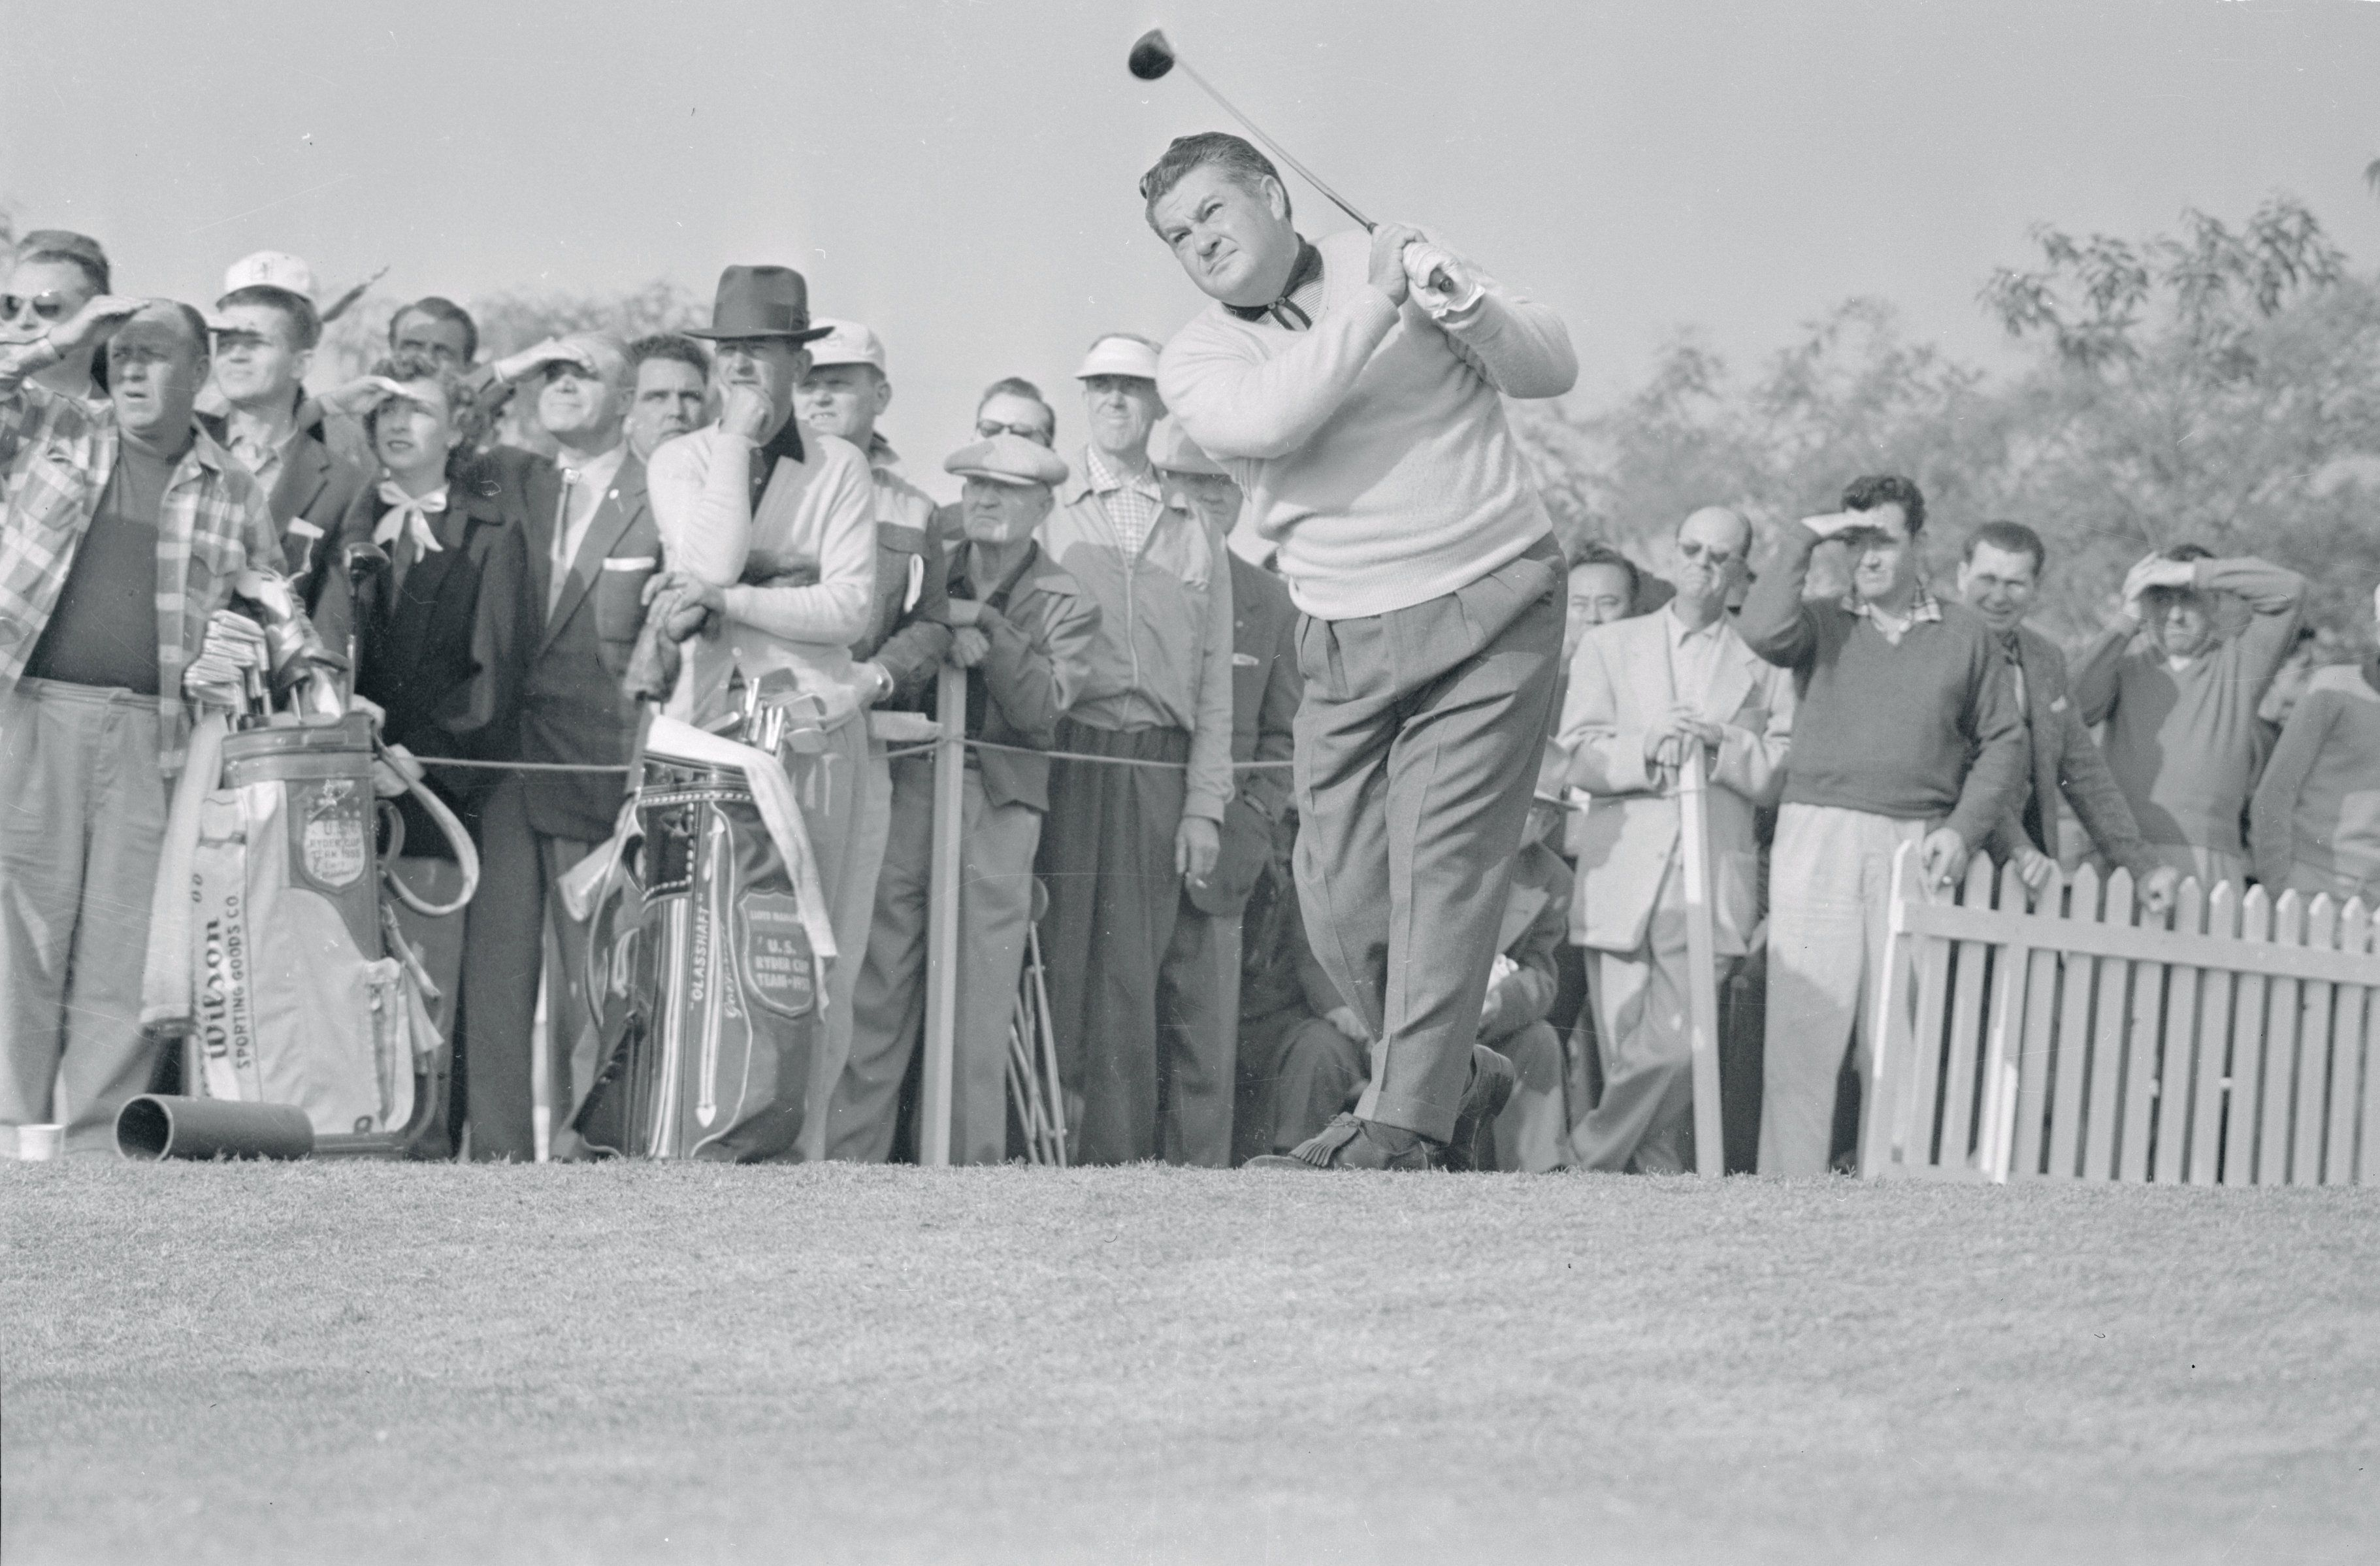 Ed 'Porky' Oliver driving during L.A. open.